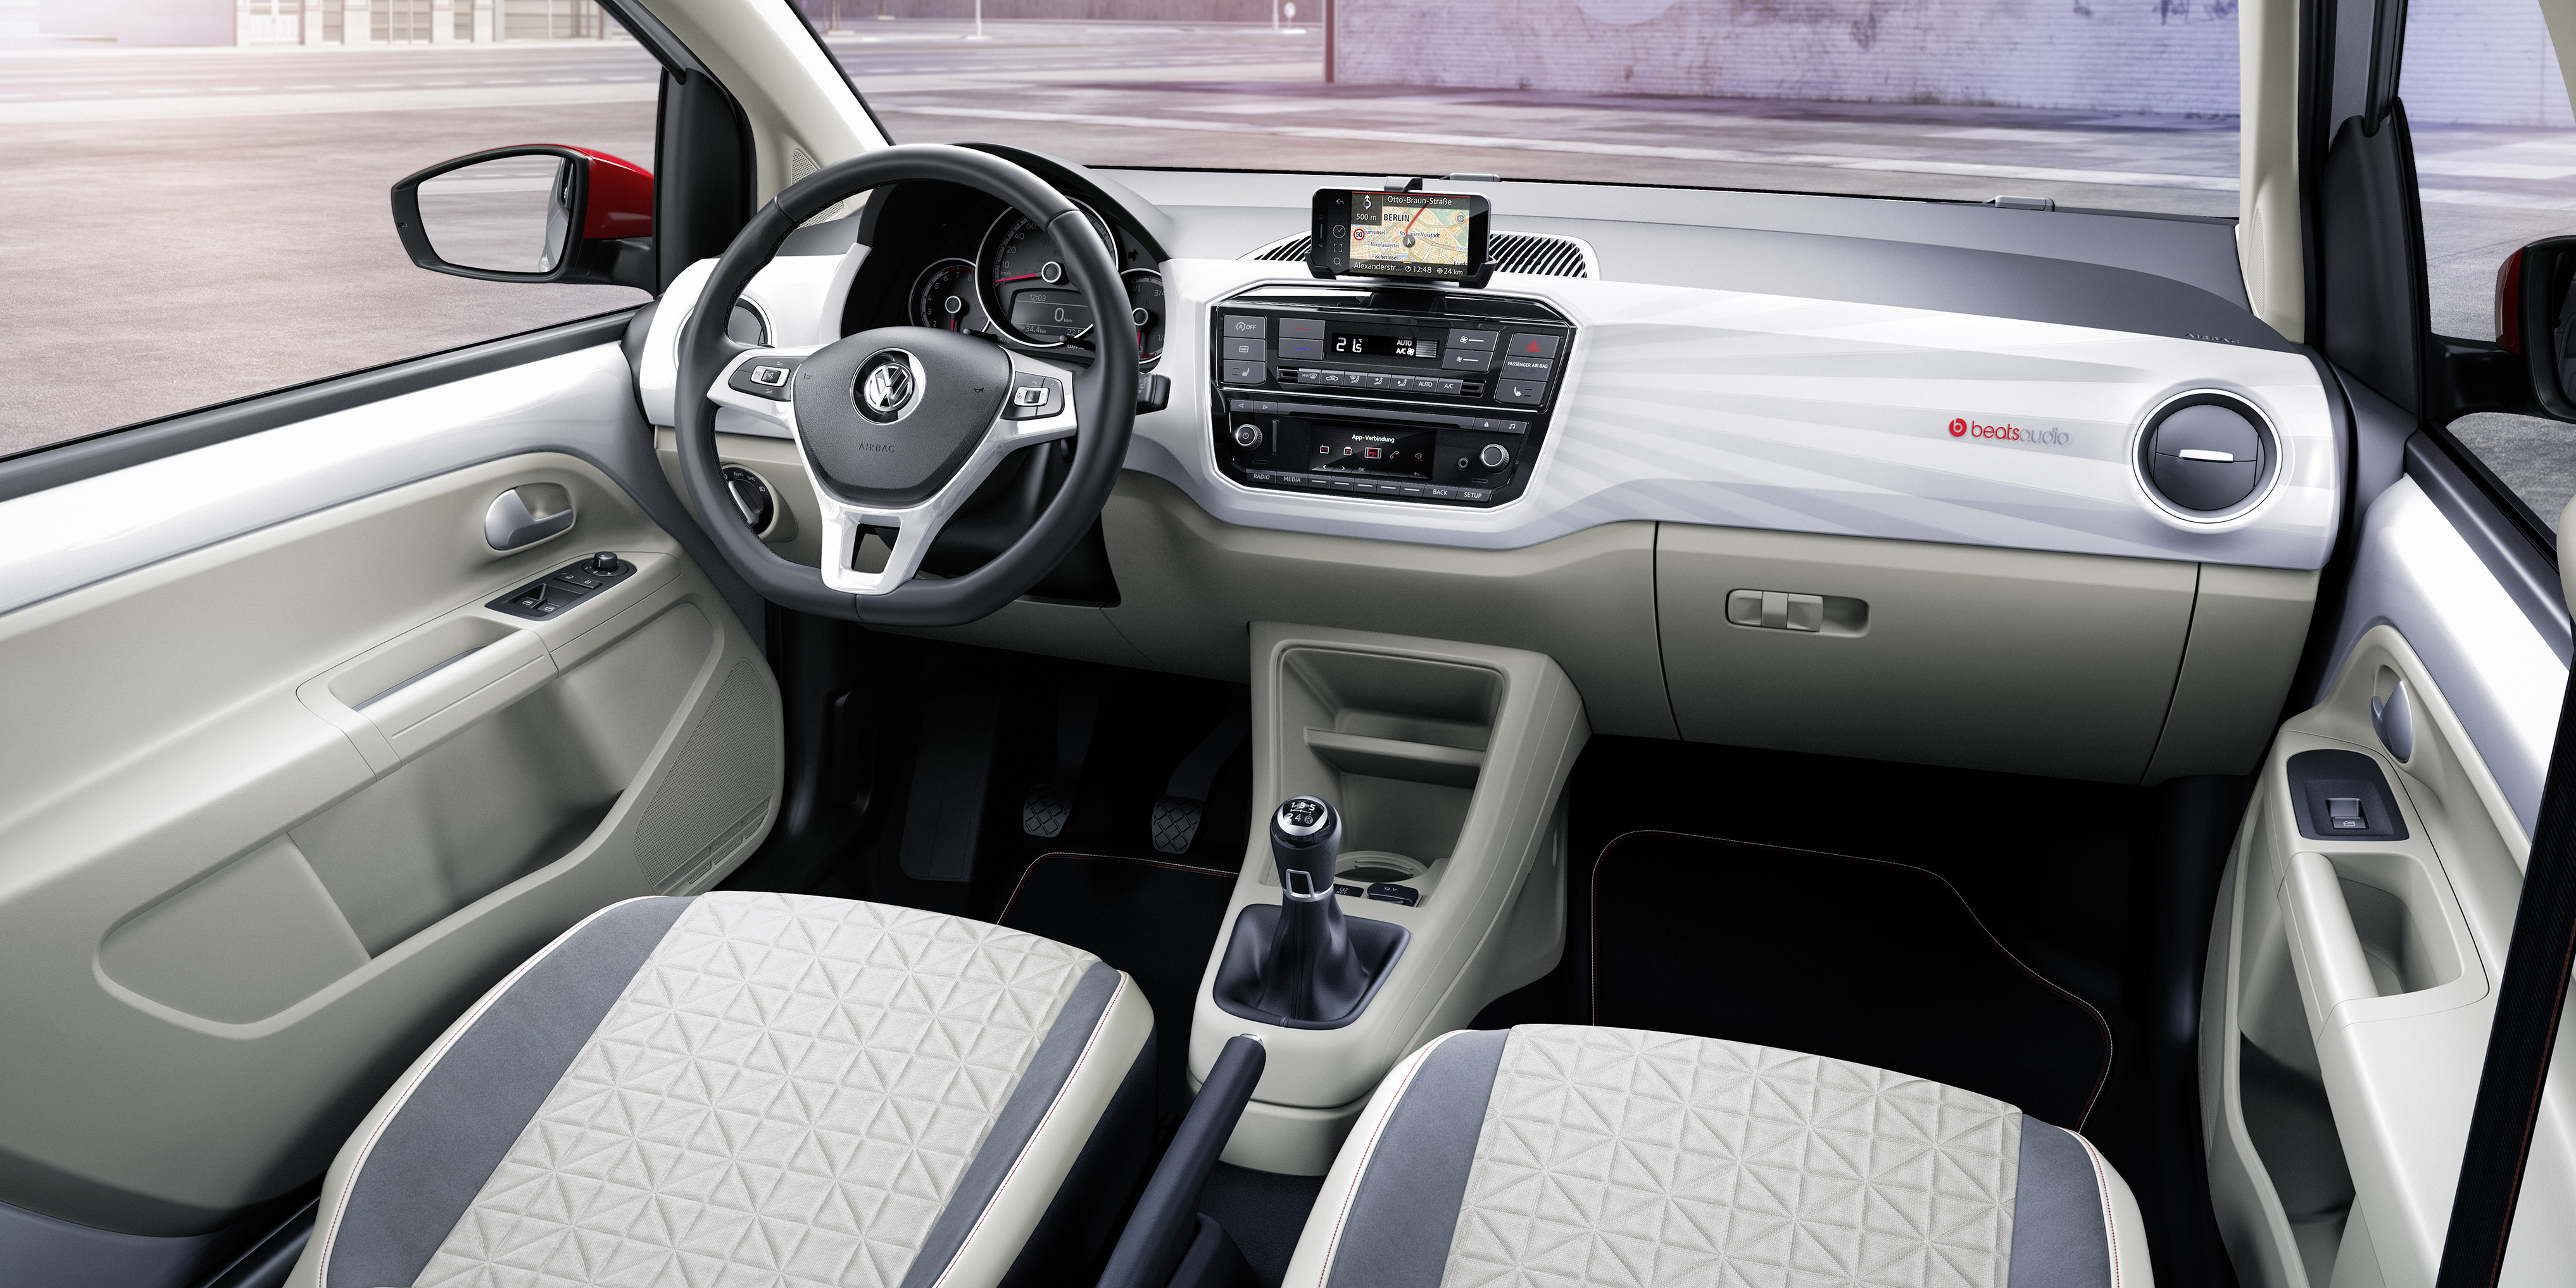 volkswagen up and polo get new beatsaudio system image 448956. Black Bedroom Furniture Sets. Home Design Ideas